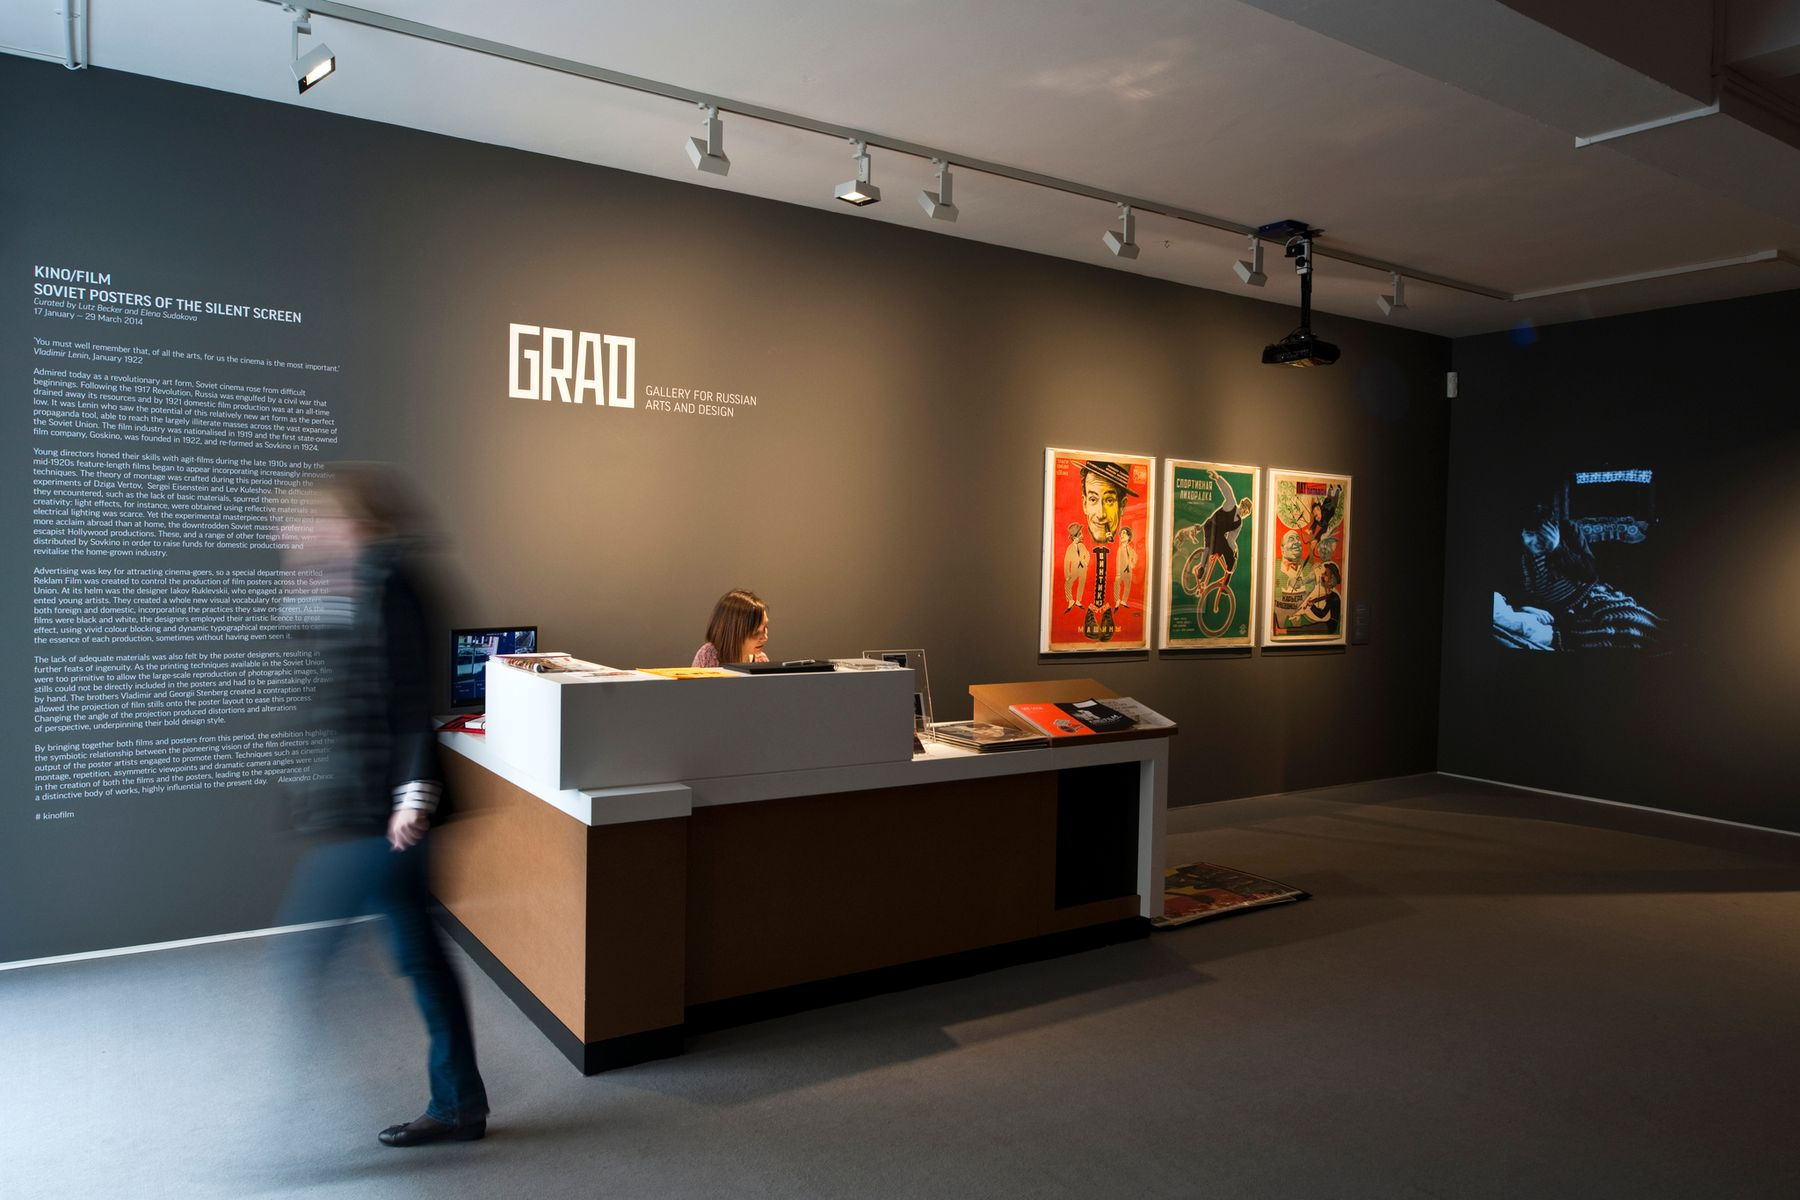 Gallery for Russian Arts and Design (GRAD), Londra. Fotografia: GRAD and Antikbar.